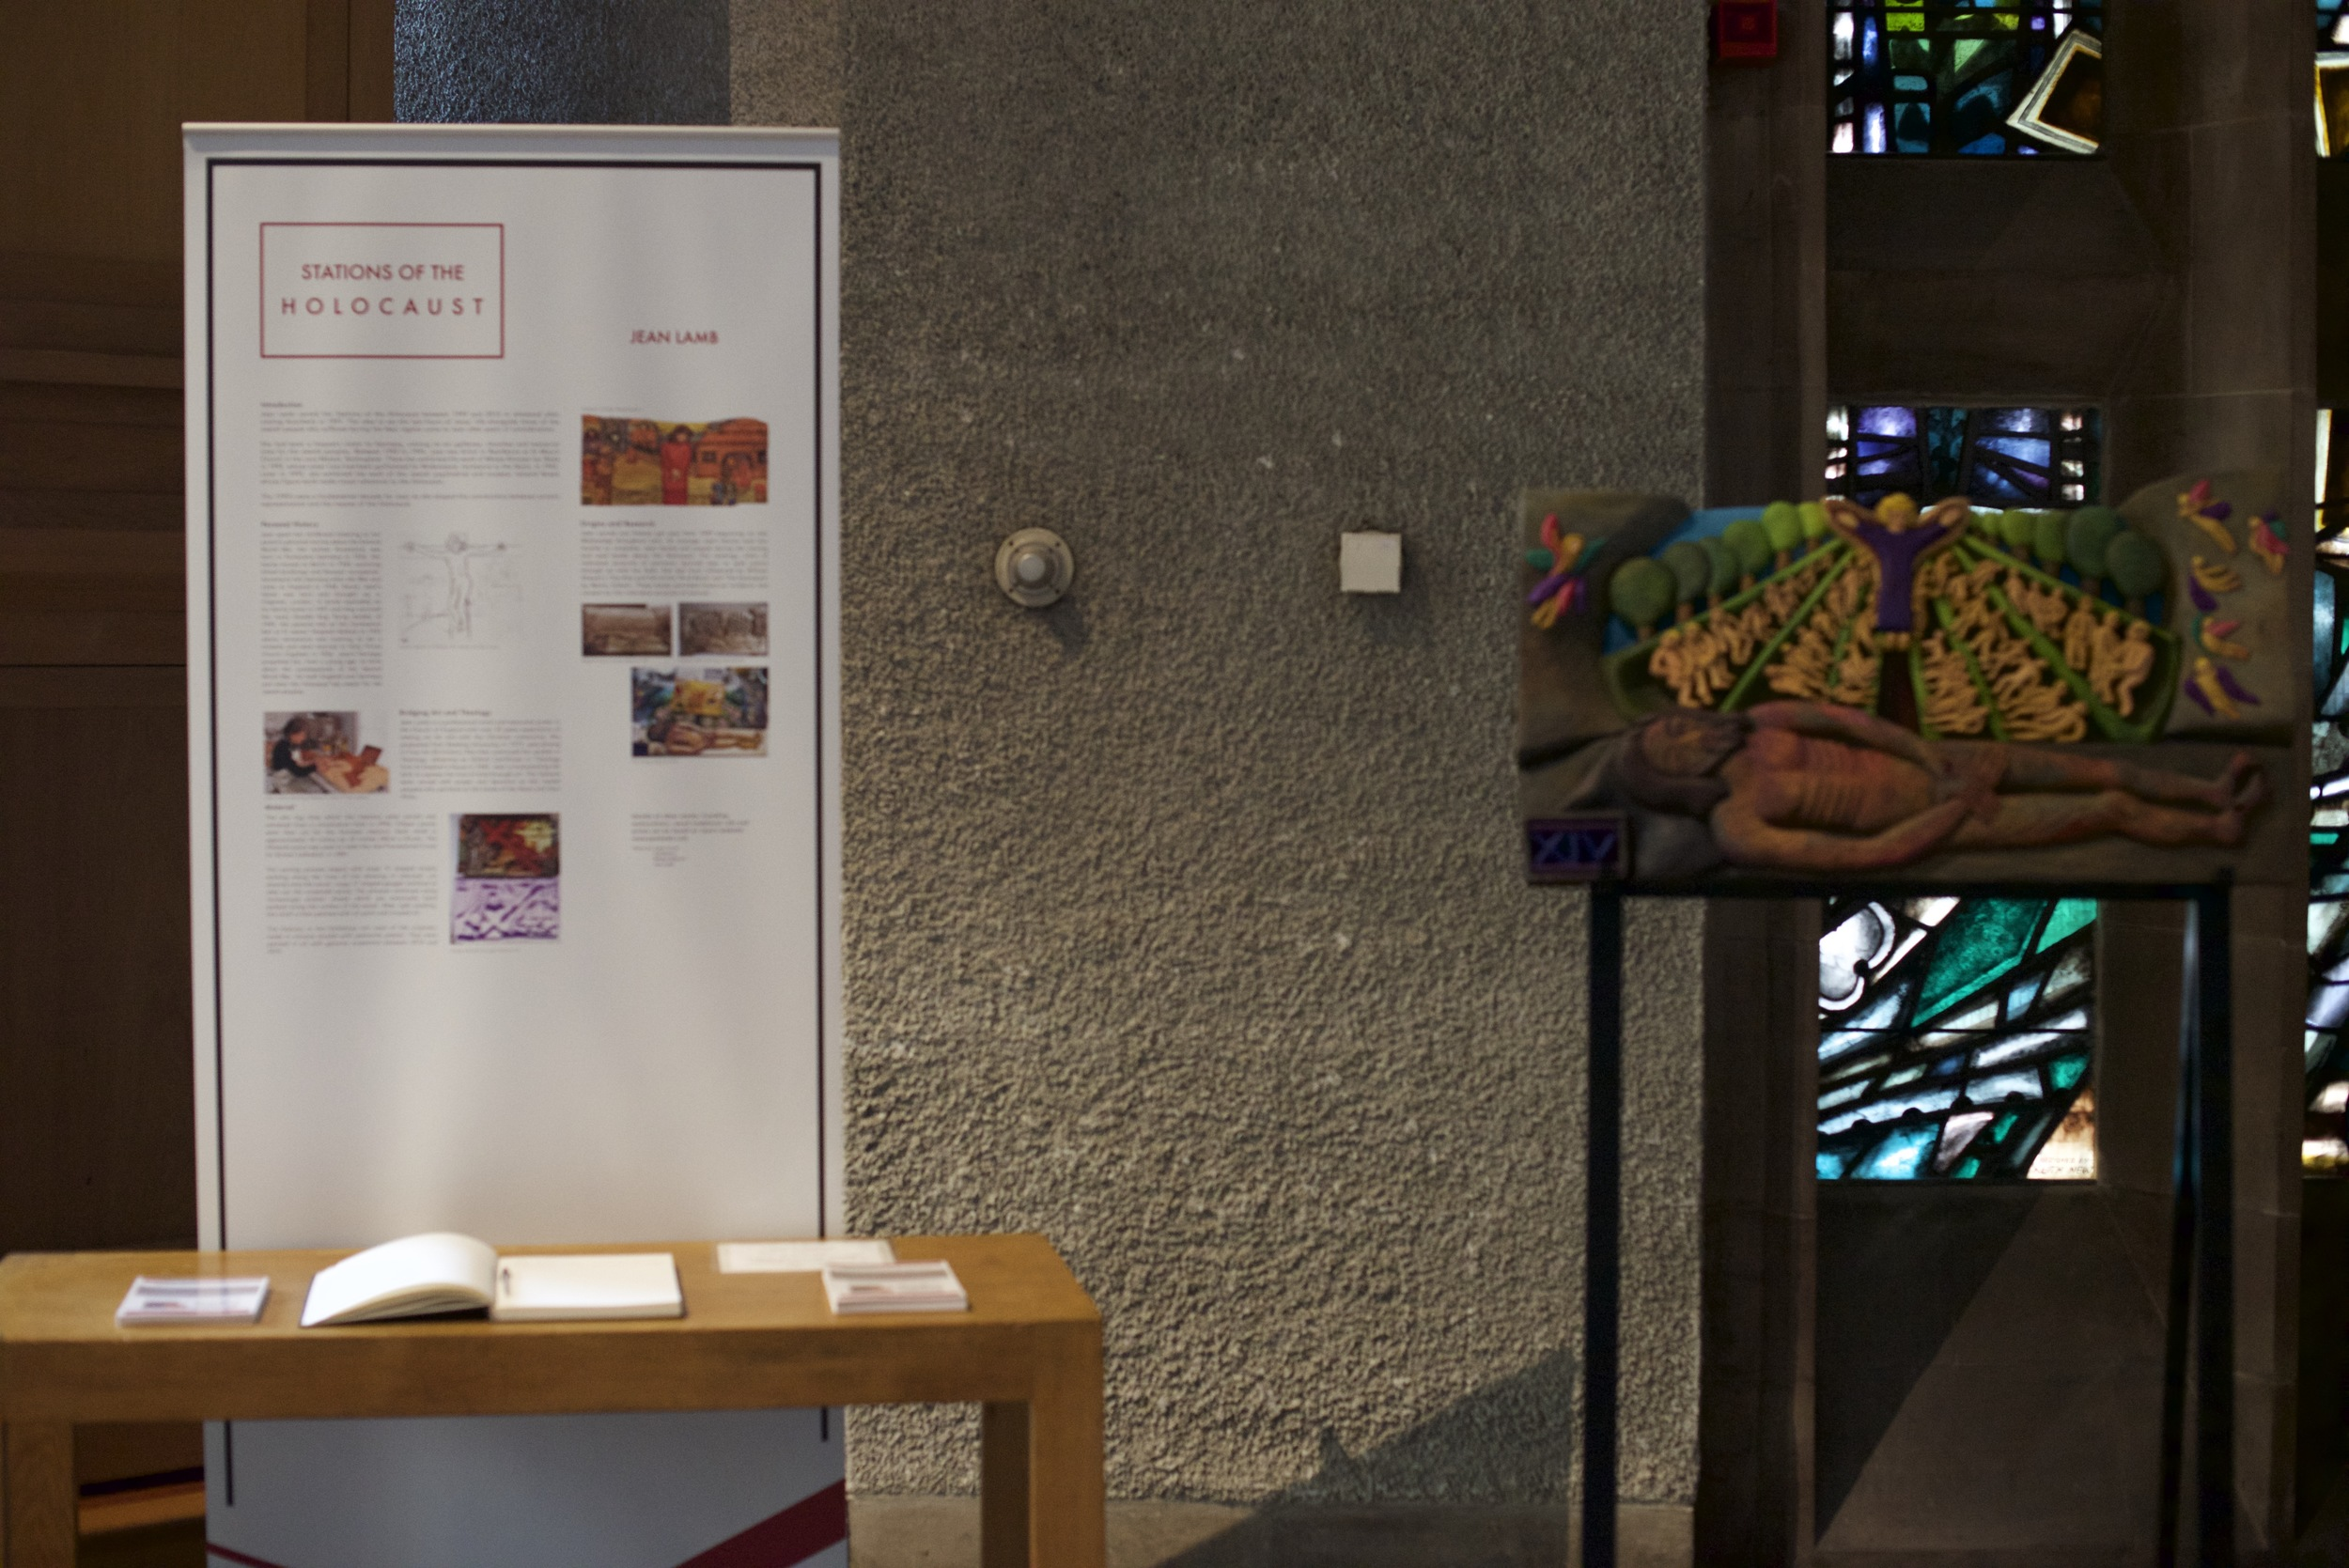 Stations of the Holocaust in Coventry Cathedral - Station XIV with table